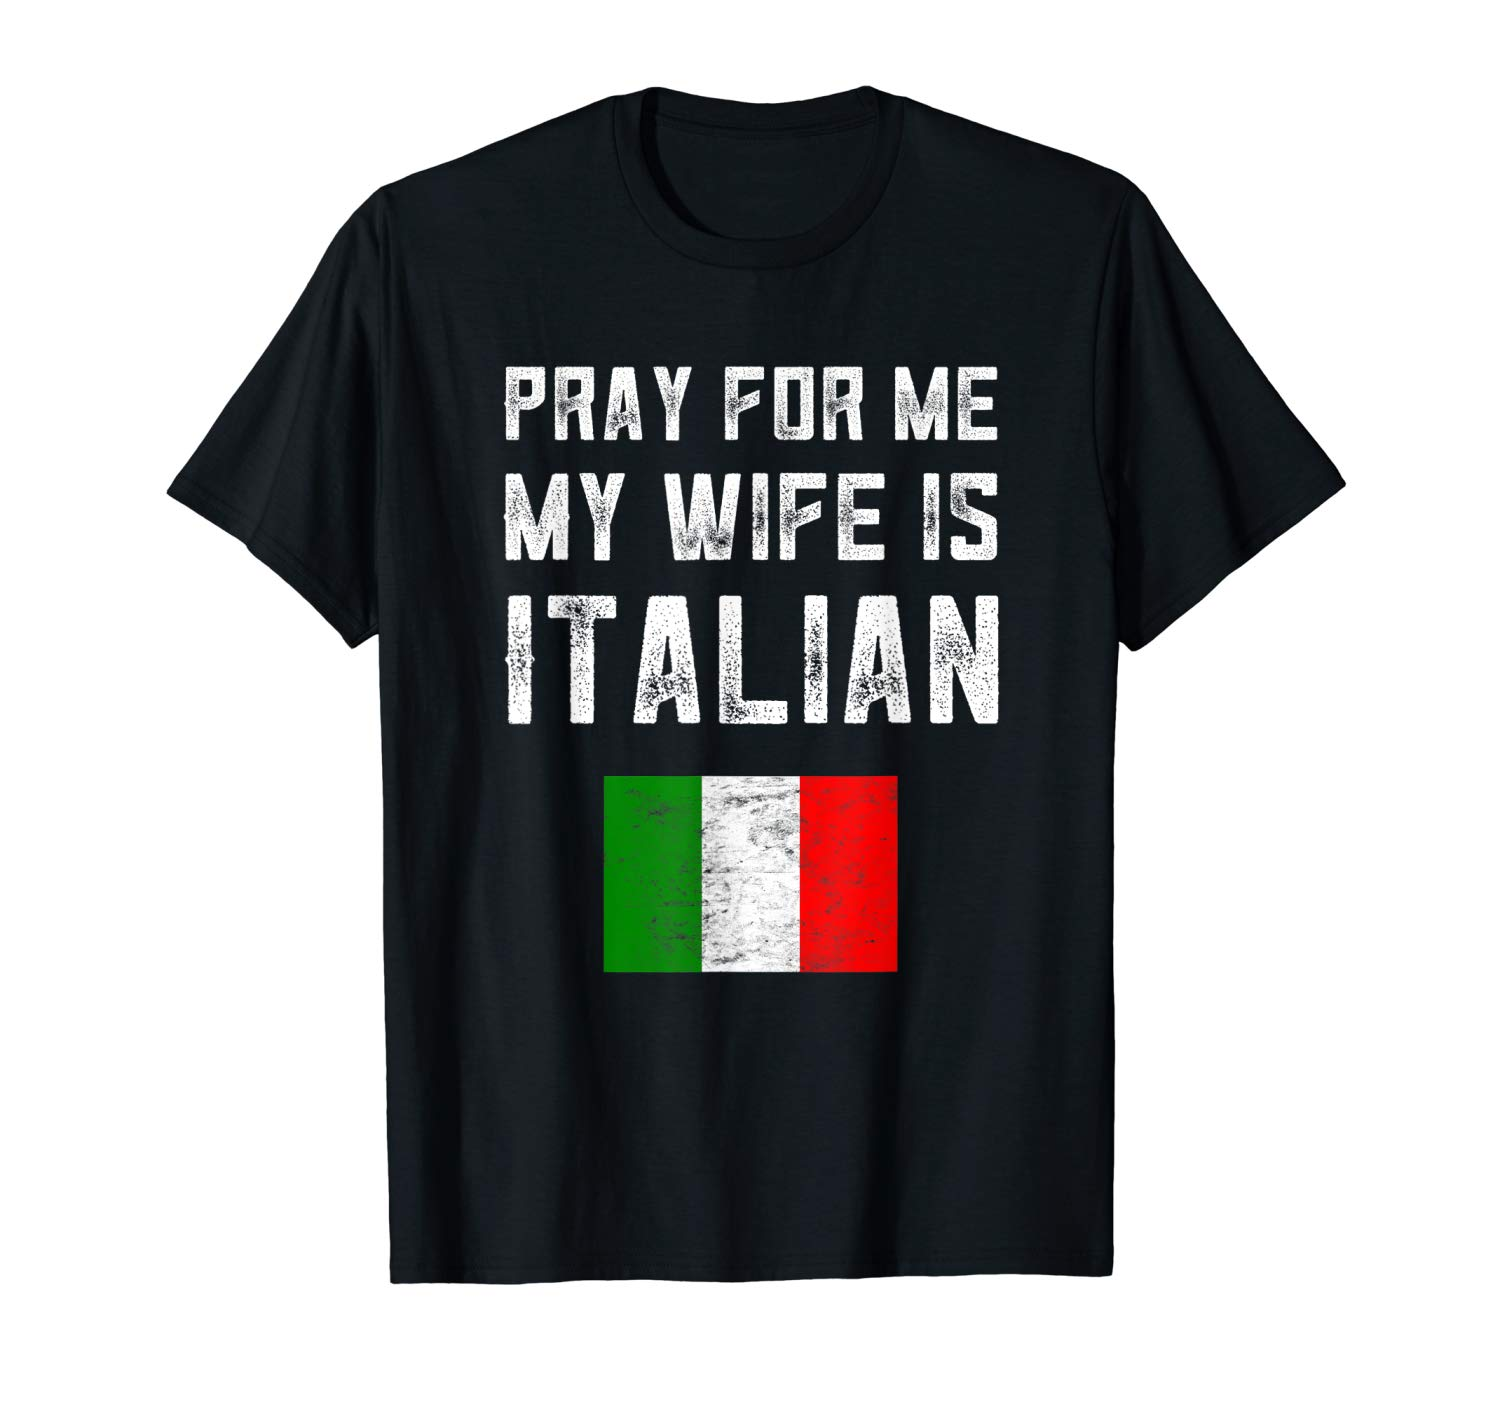 S Pray For Me My Wife Is Italian Shirt Fathers Day Husband T Shirt